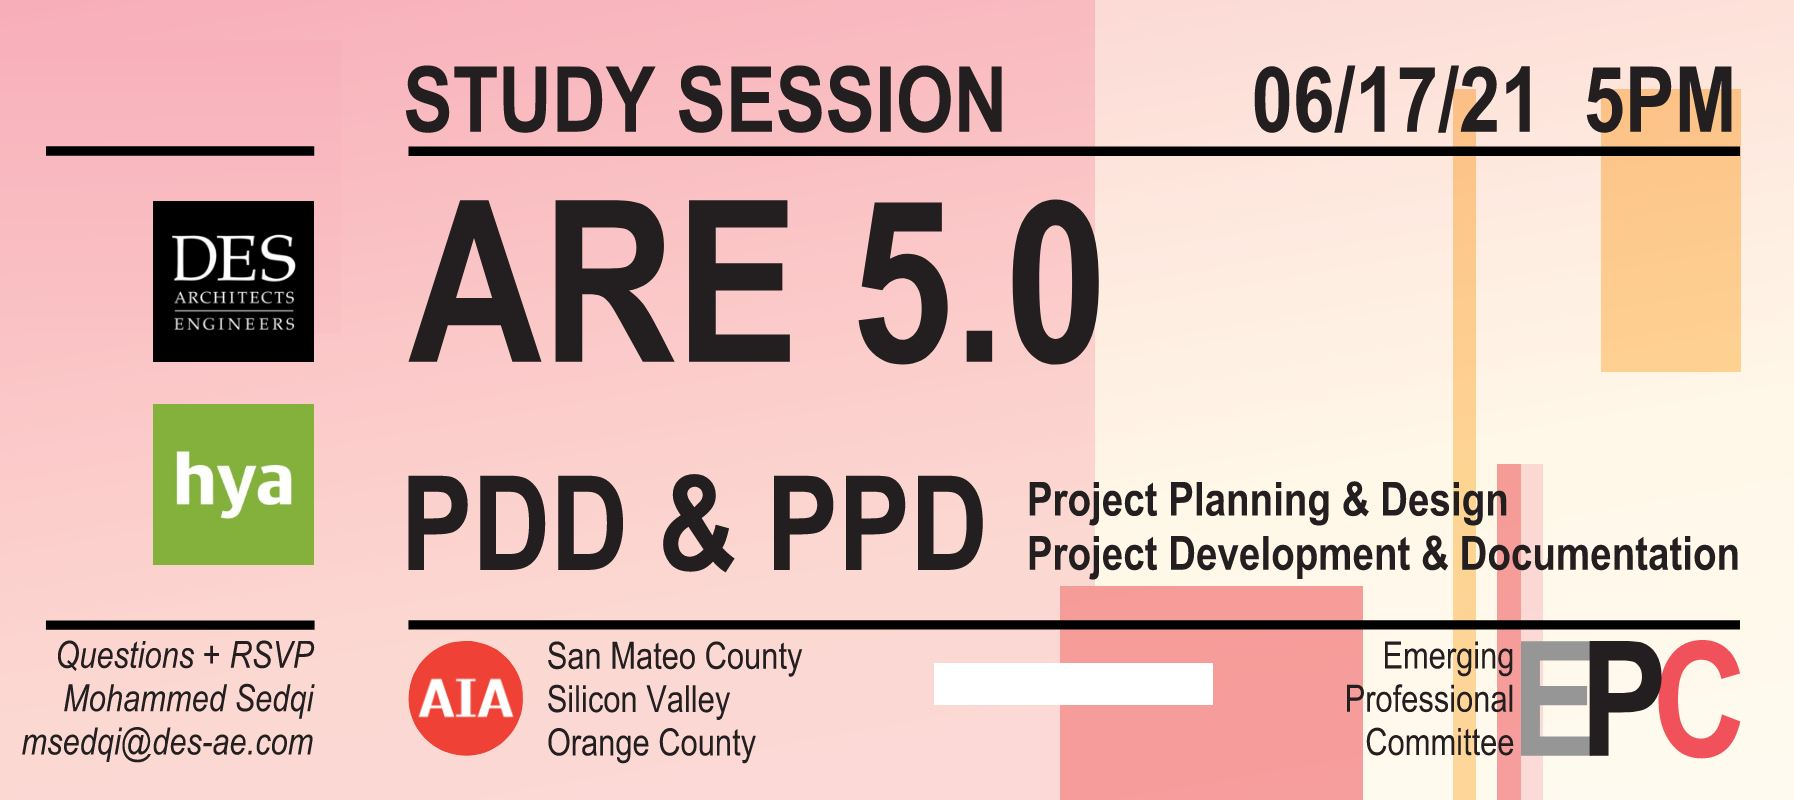 ARE 5.0 Study Session - PPD & PDD